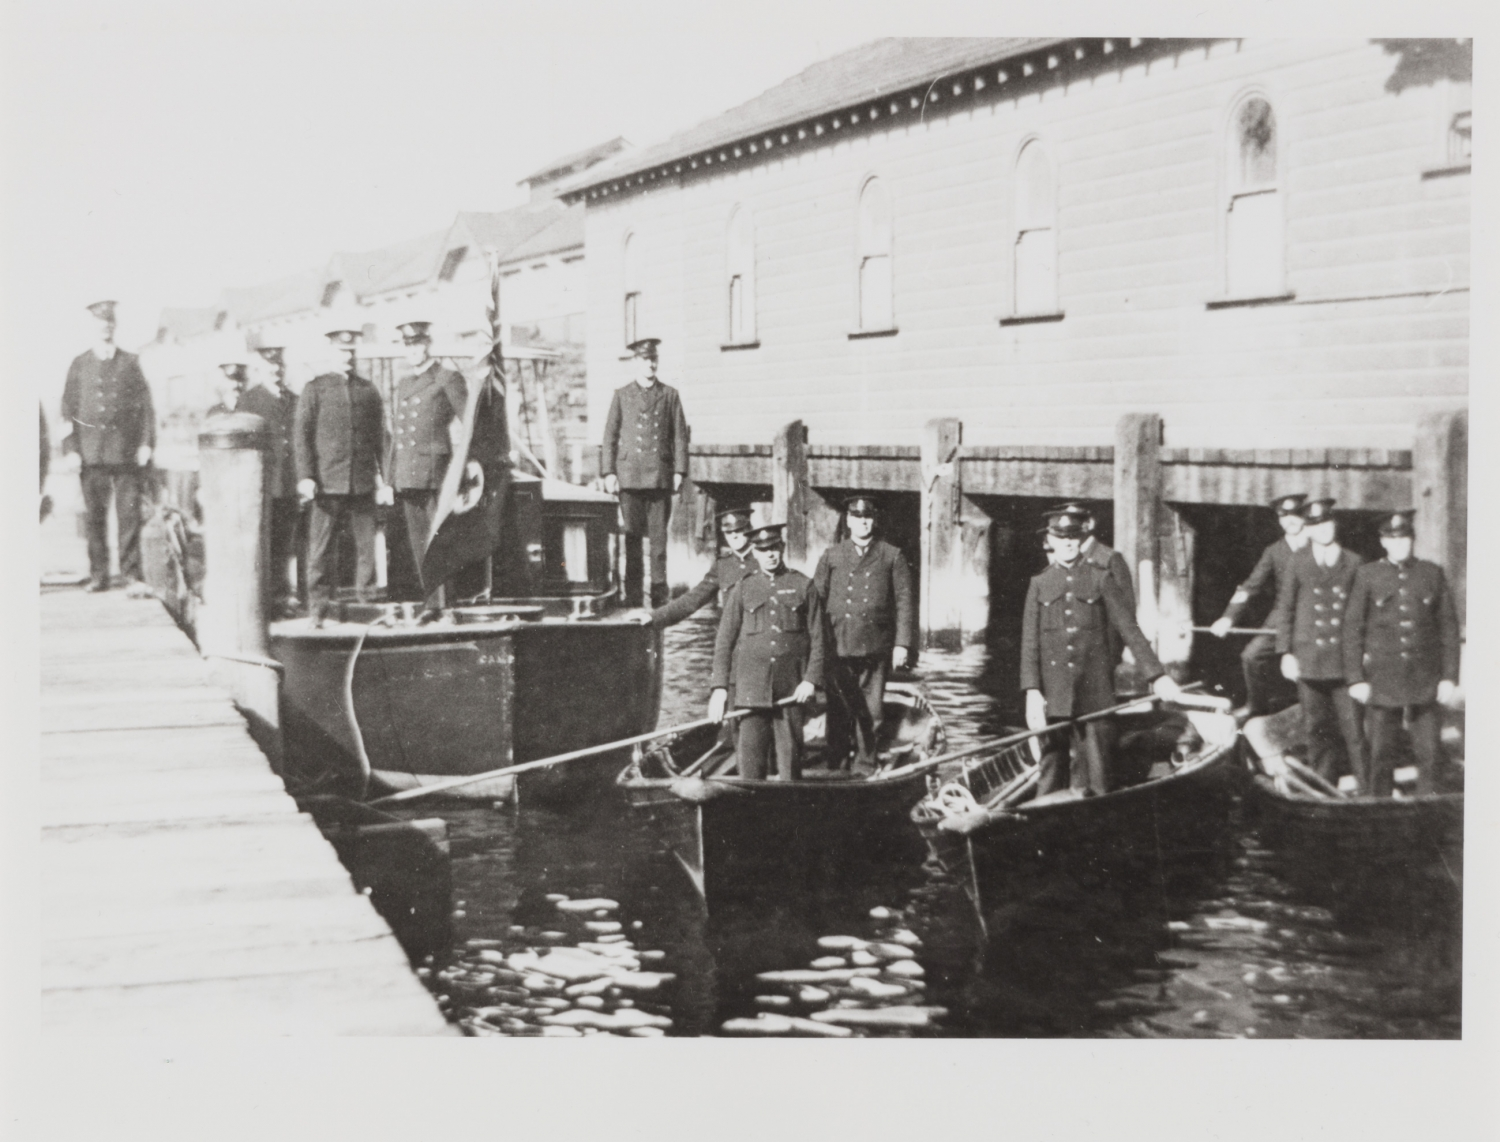 Policemen on set of four boats, one larger motorboat, three smaller rowboats